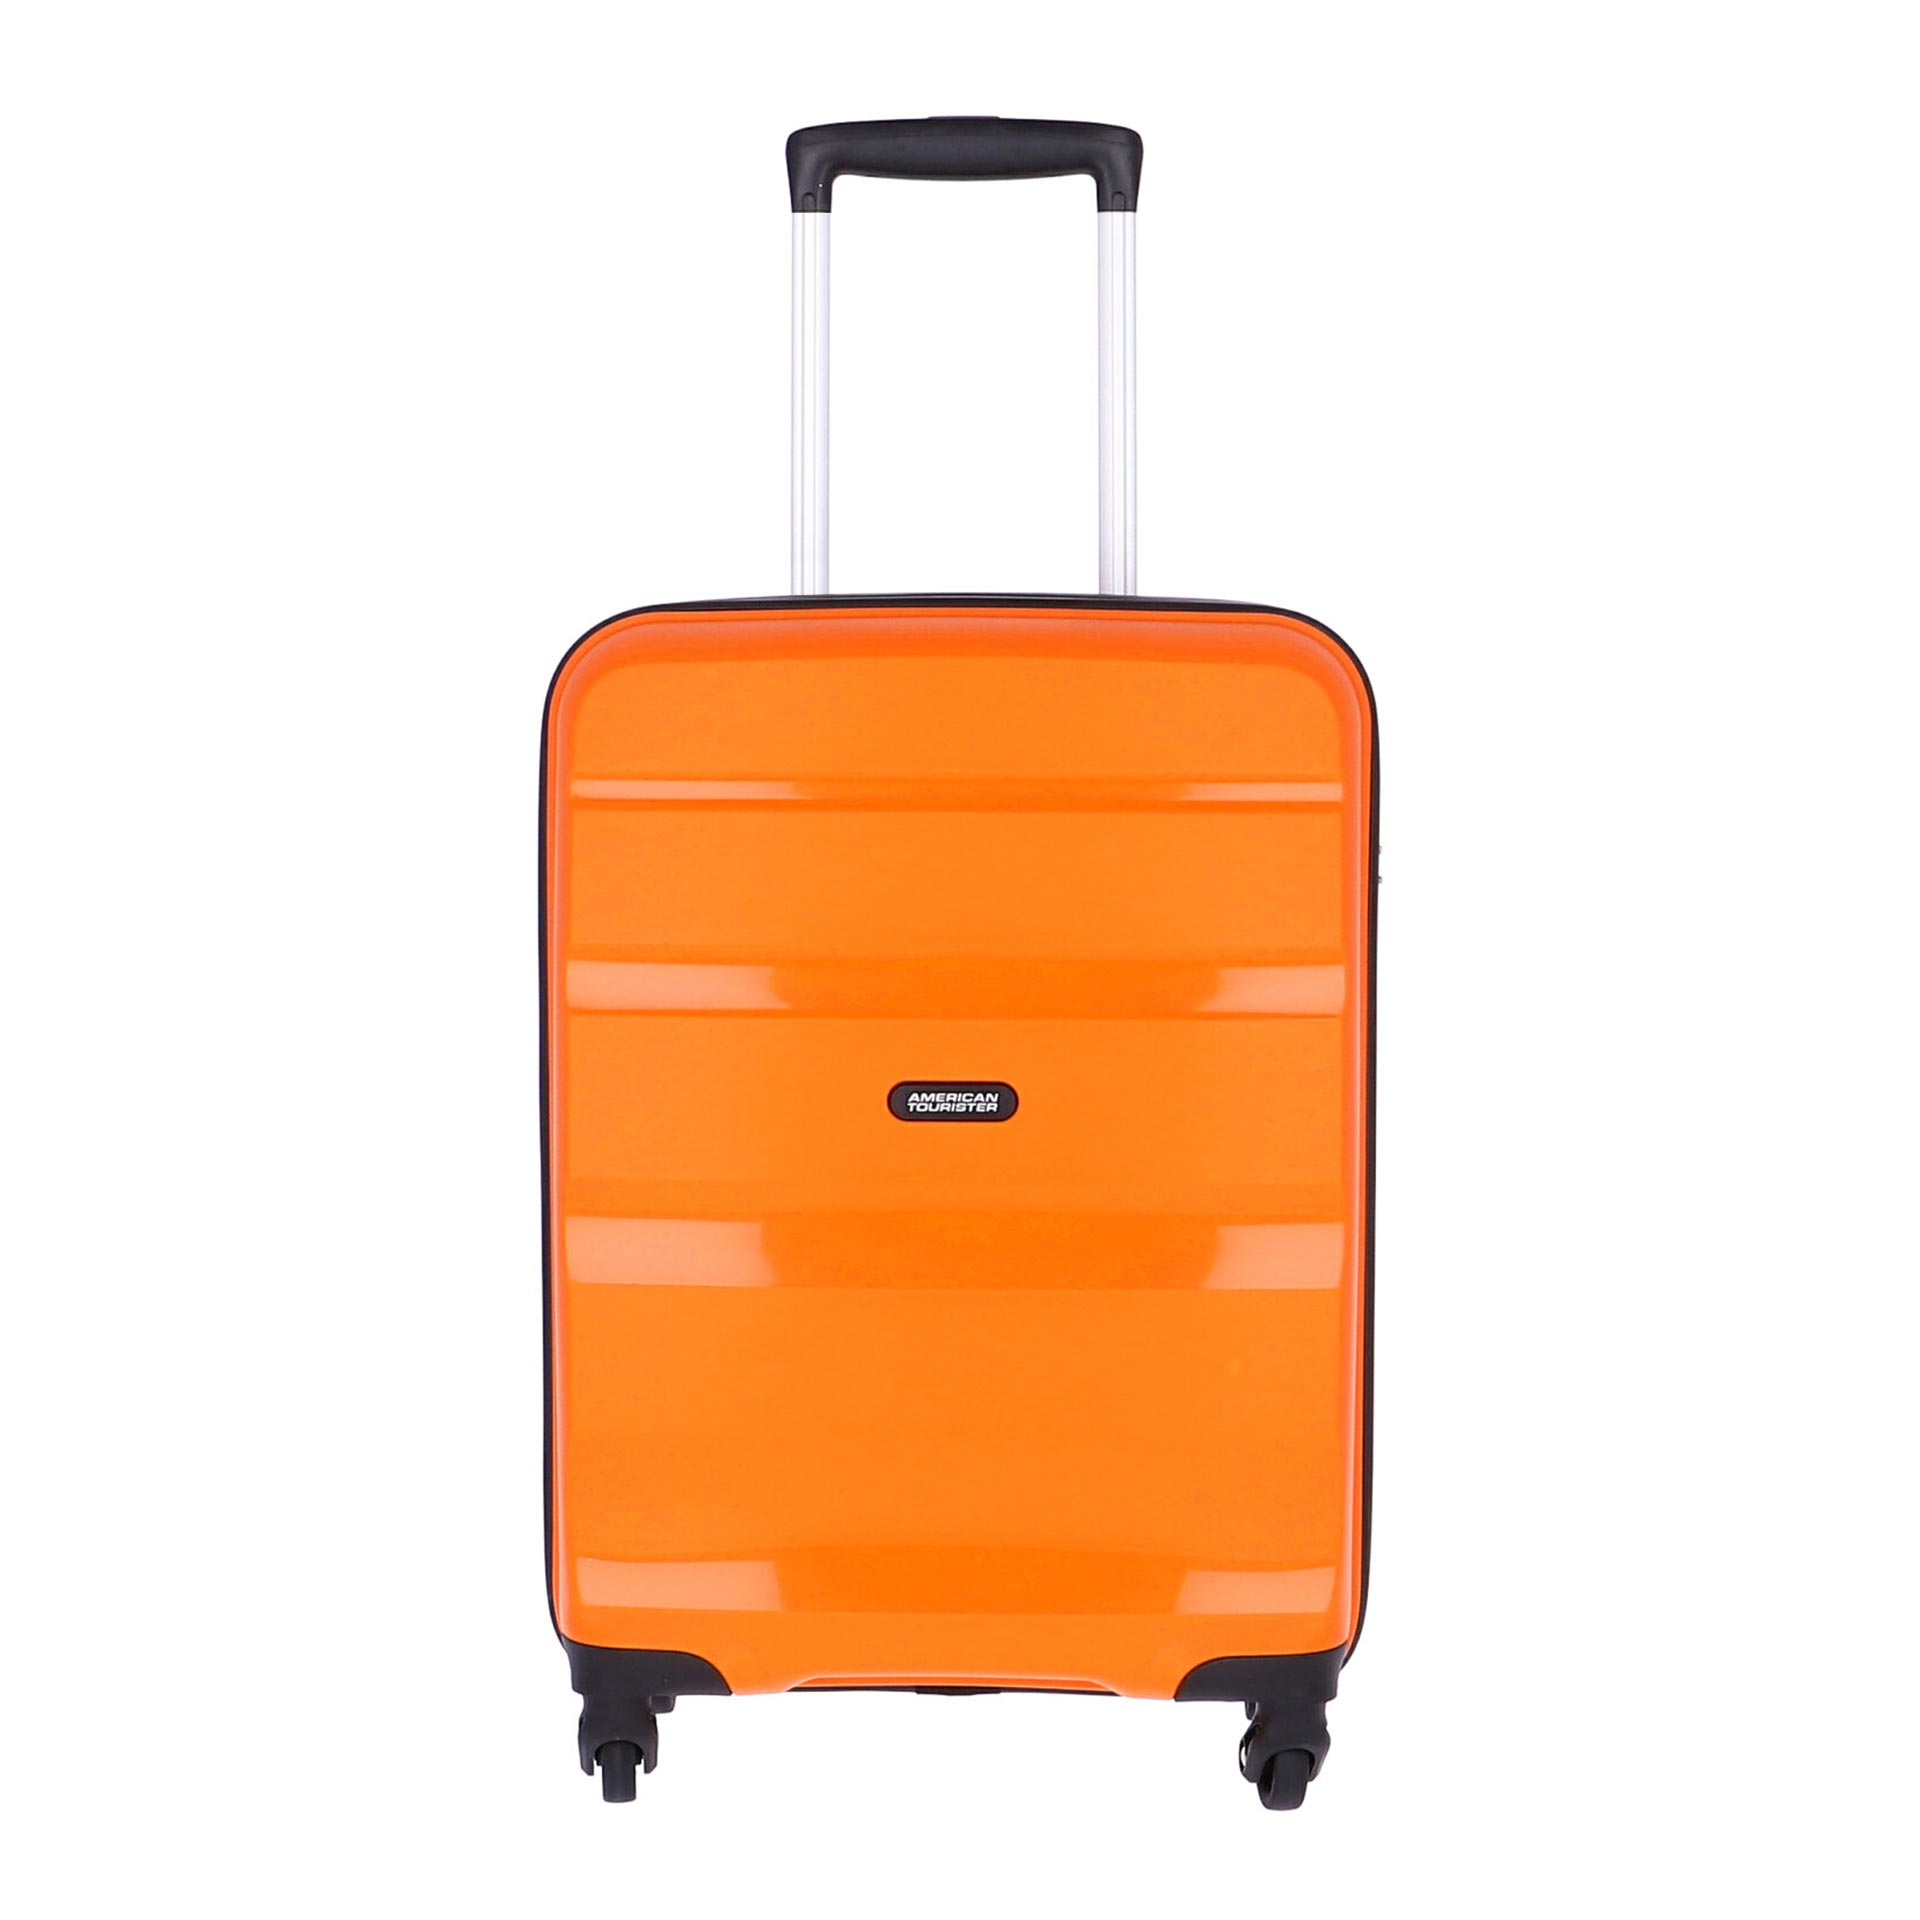 Bon Air 4-Rad Trolley 55cm tangerineorange